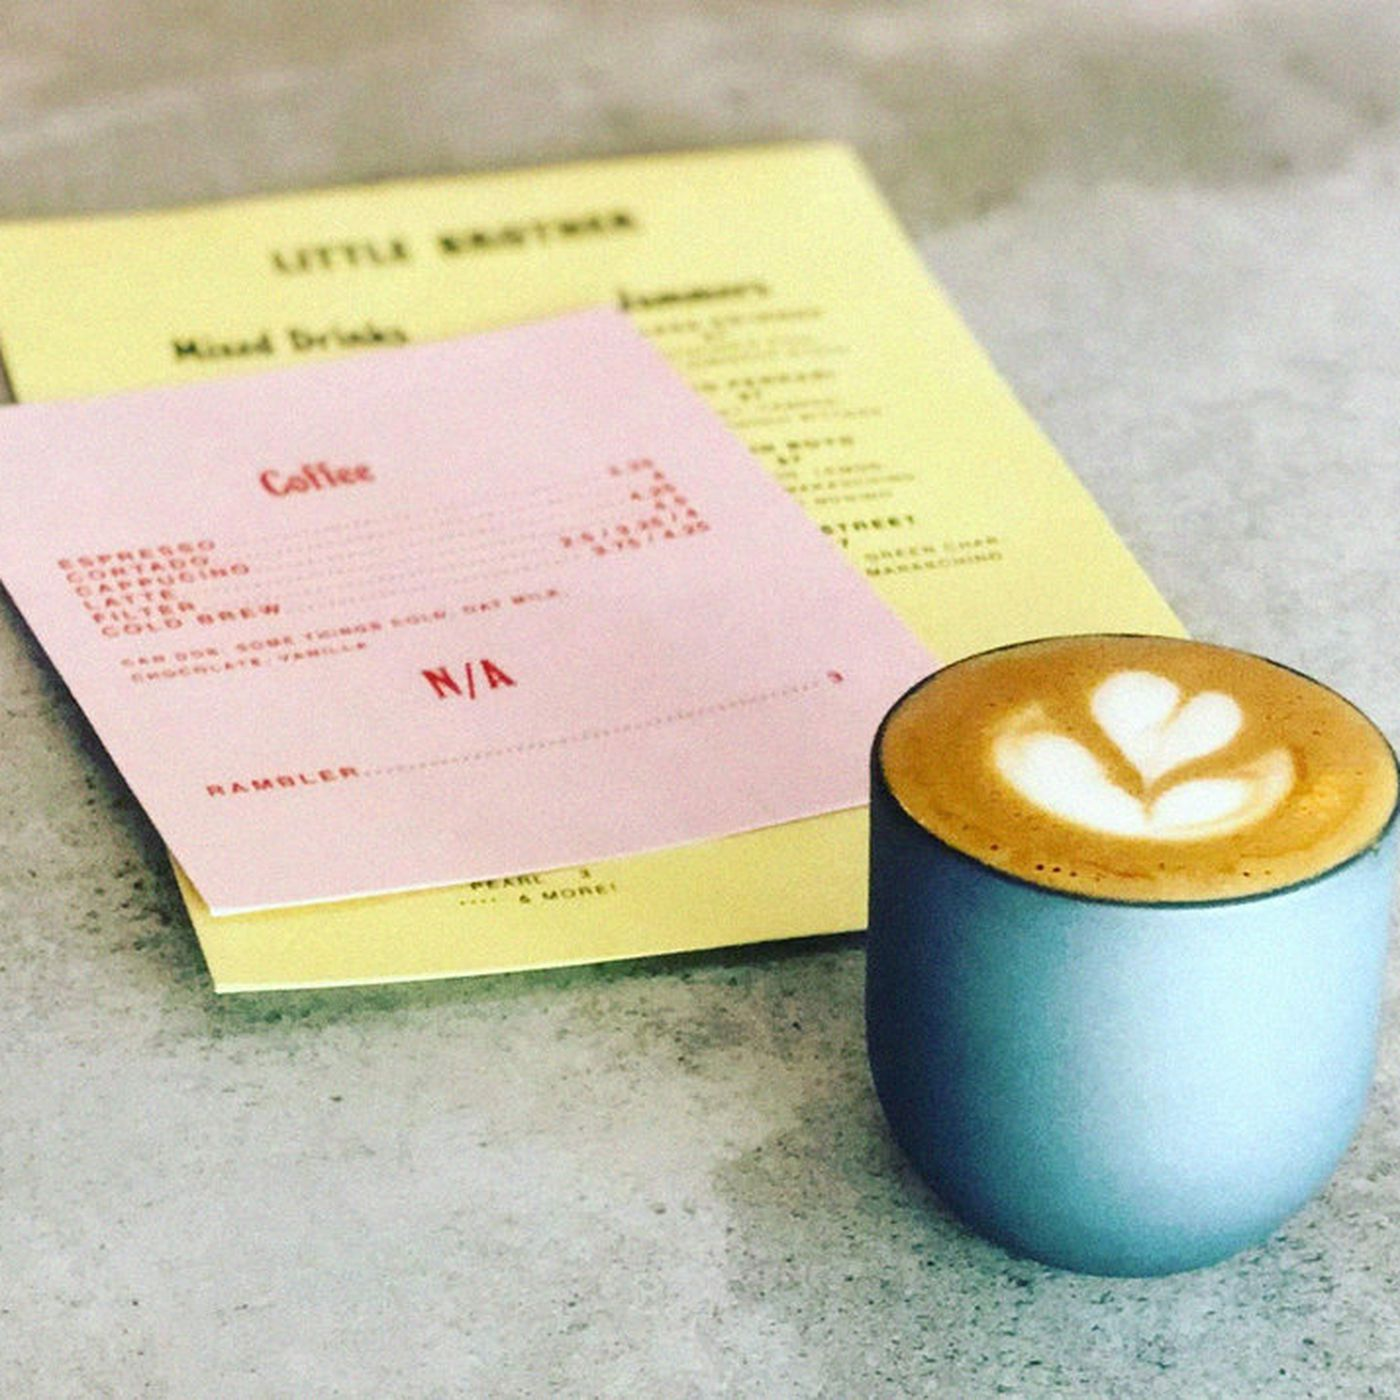 Best Coffee Shops in Austin, Summer 2019 - Eater Austin